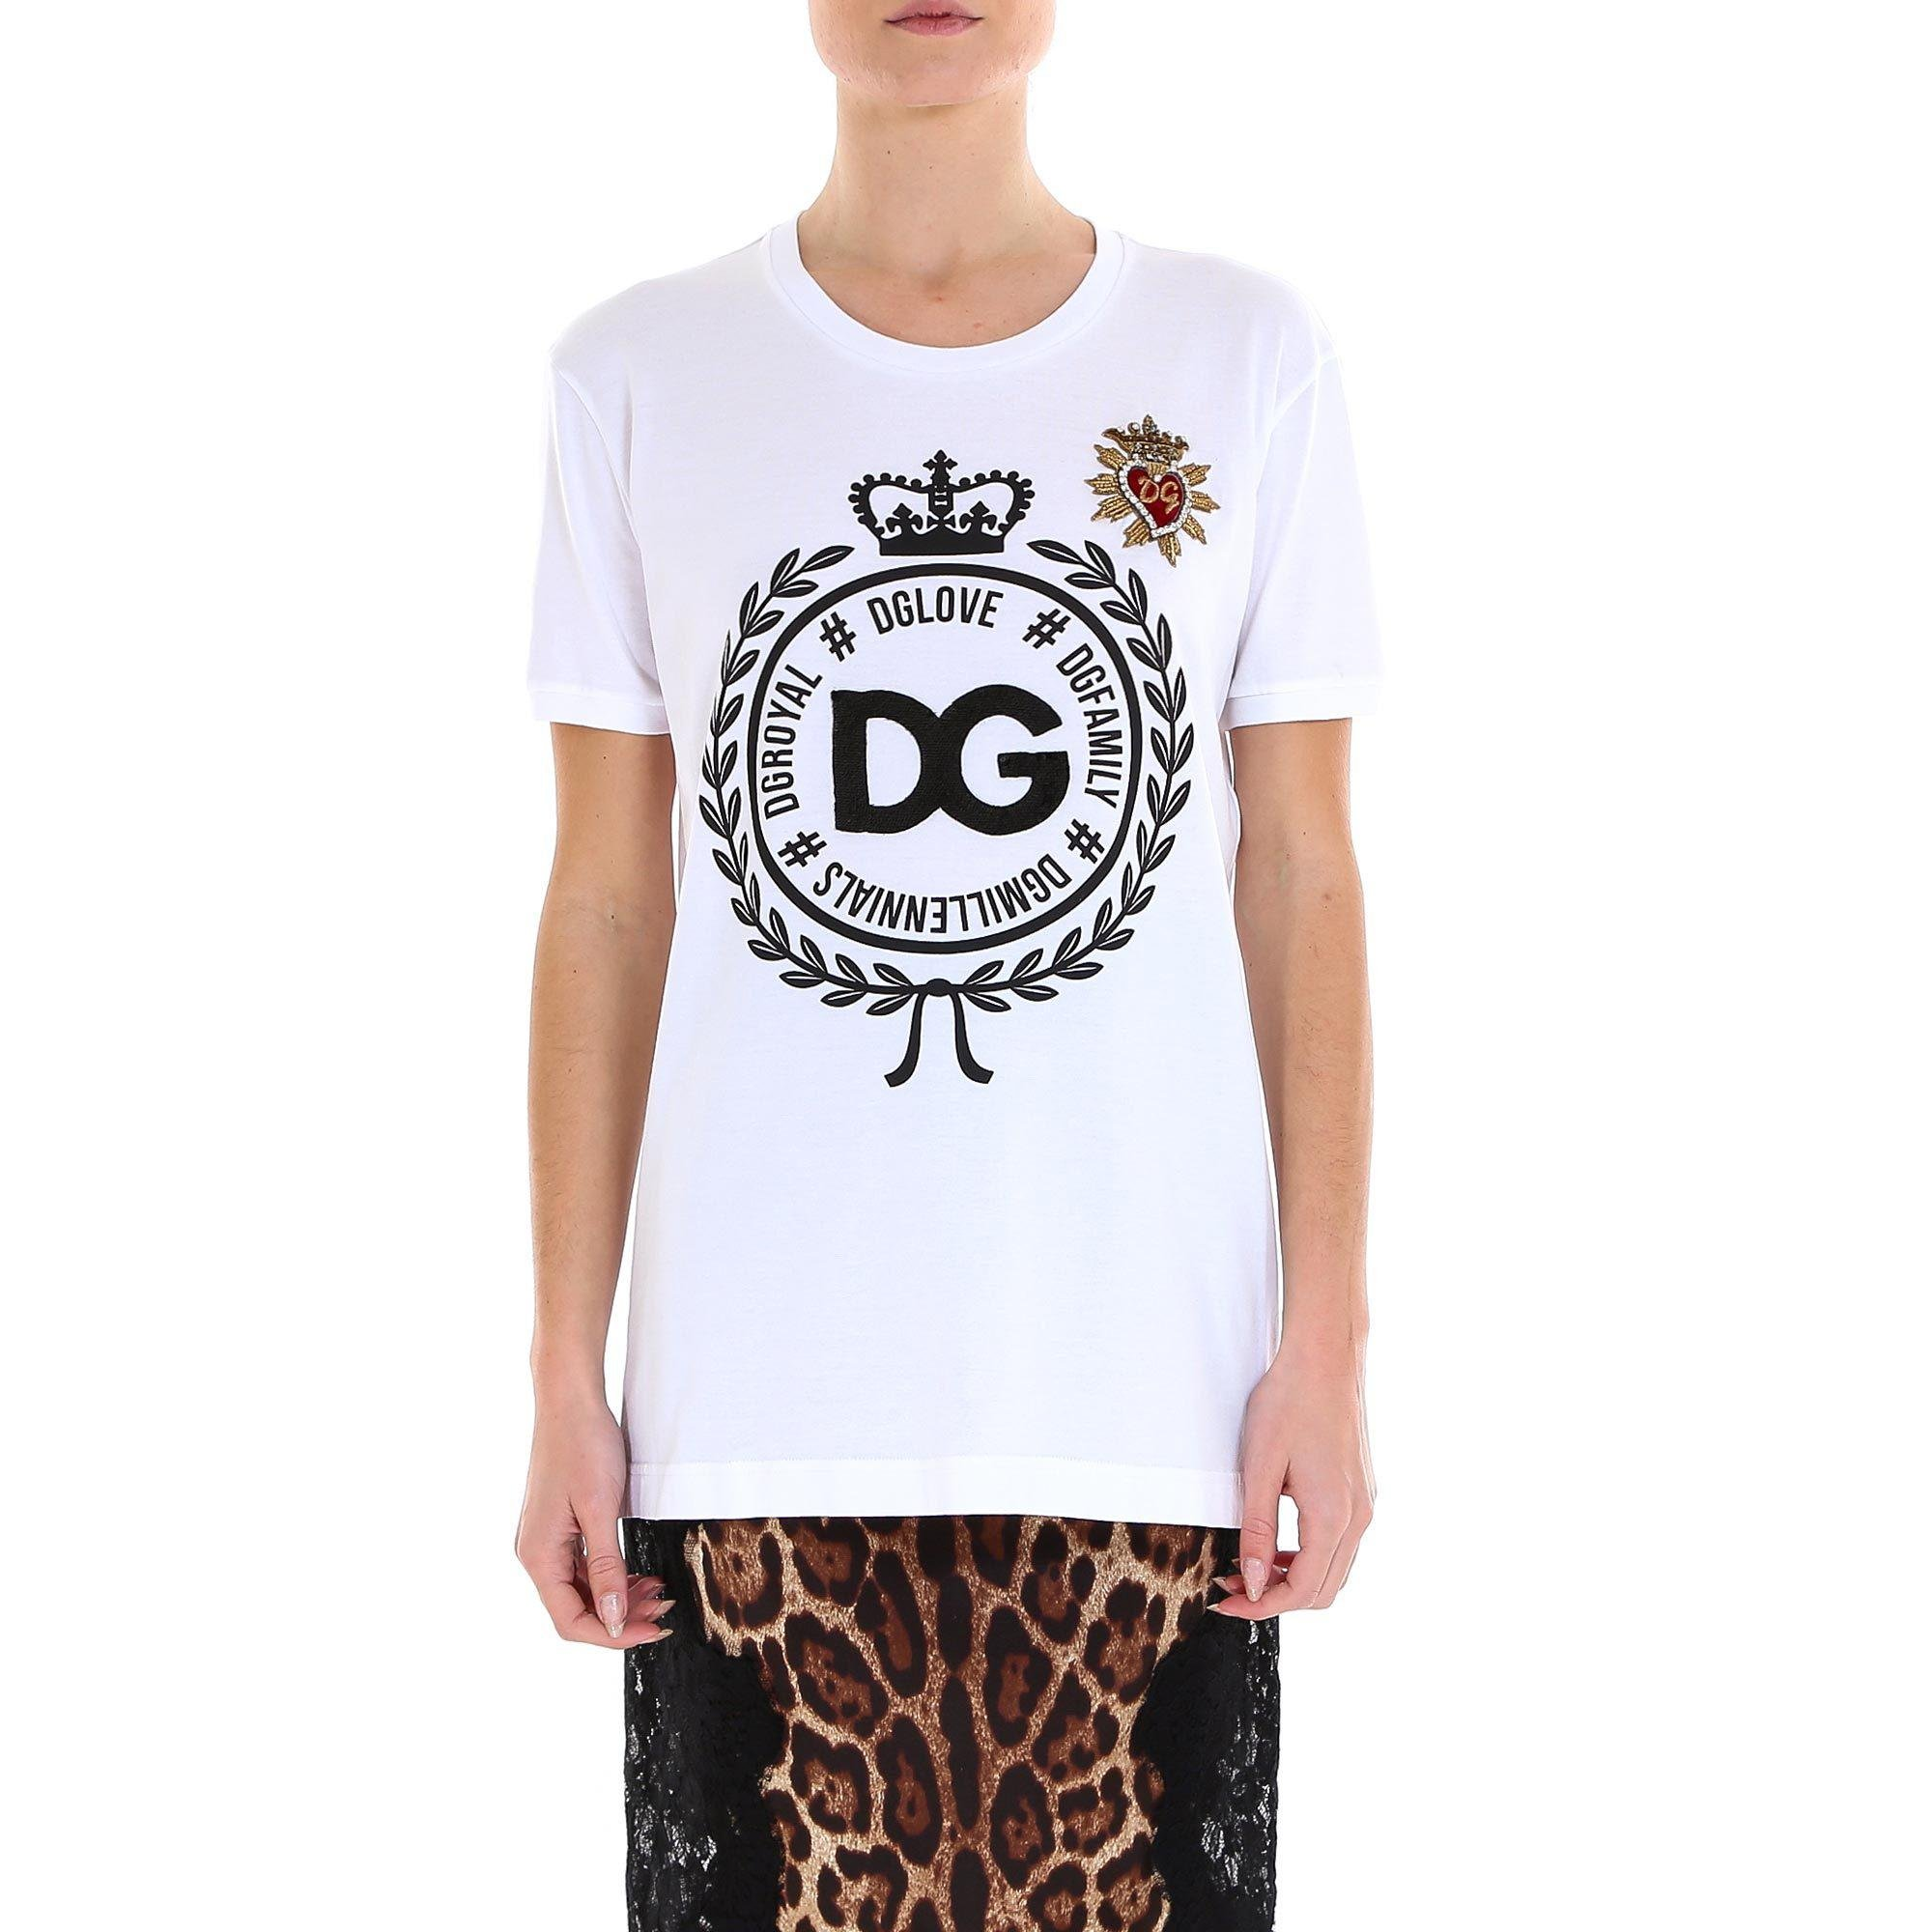 56ad892a8 Lyst - Dolce & Gabbana Logo Crown T-shirt in White